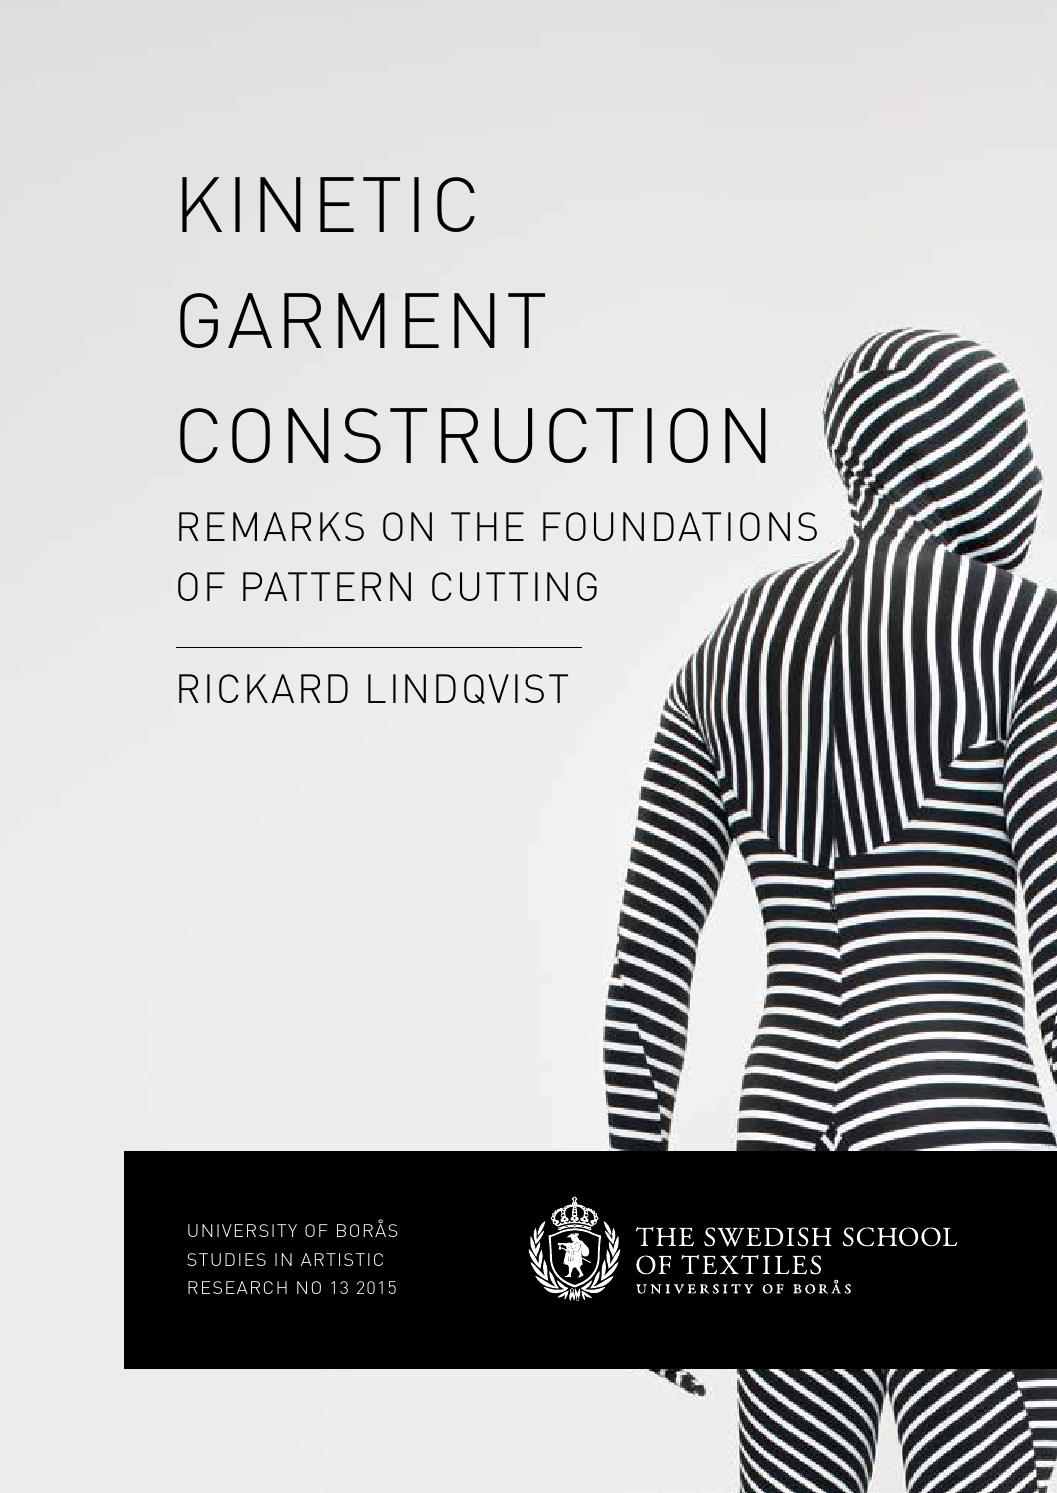 Kinetic Garment Construction By Rickard Lindqvist Issuu